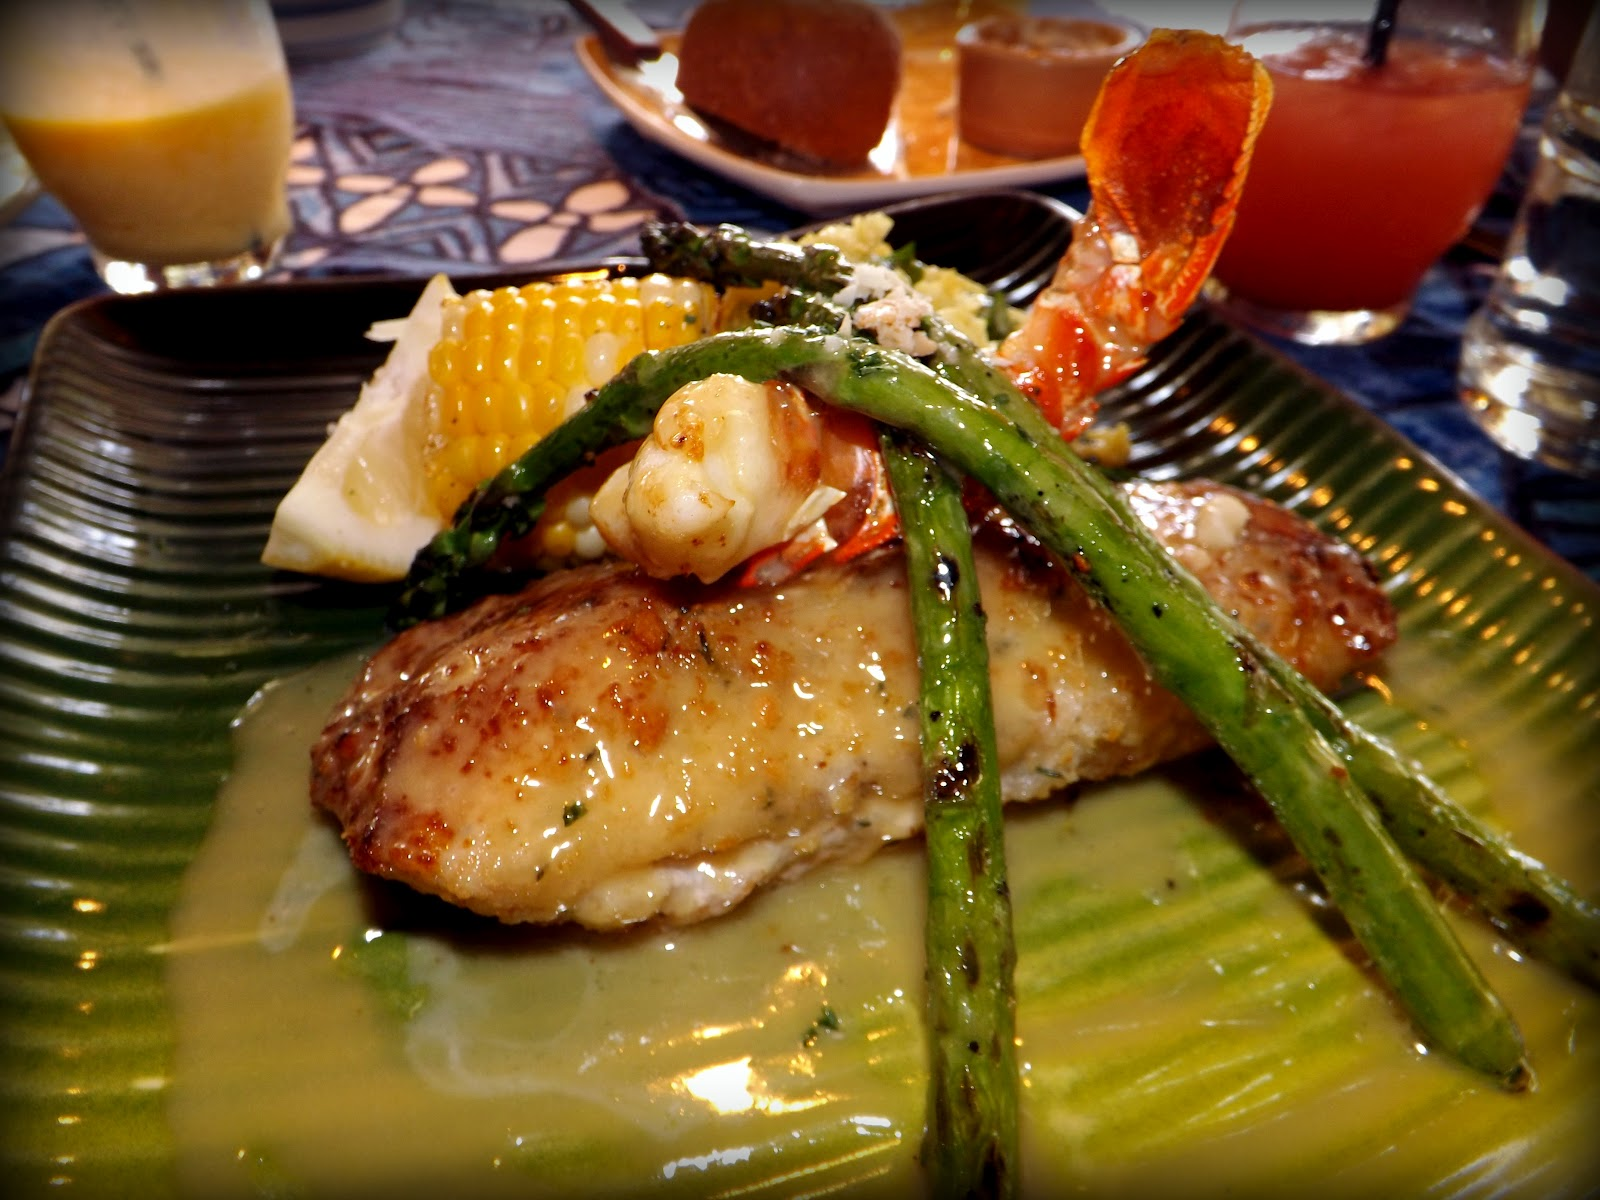 Wilsonsguide where to travel mama s fish house maui for Mamas fish house lunch menu